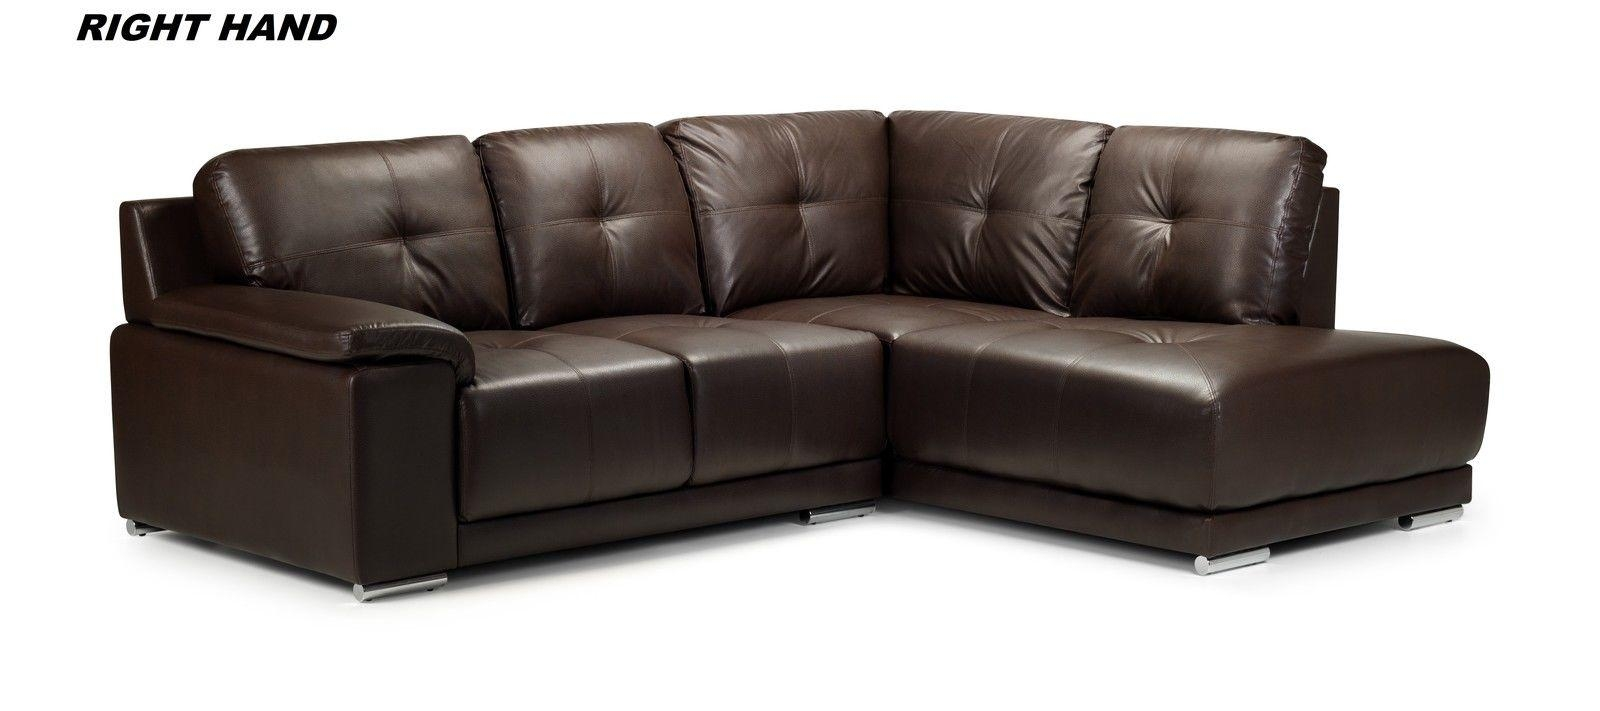 Leather Corner Sofas And Home Leather Reclining Sofas Houston With Regard To Black Leather Corner Sofas (Image 15 of 20)